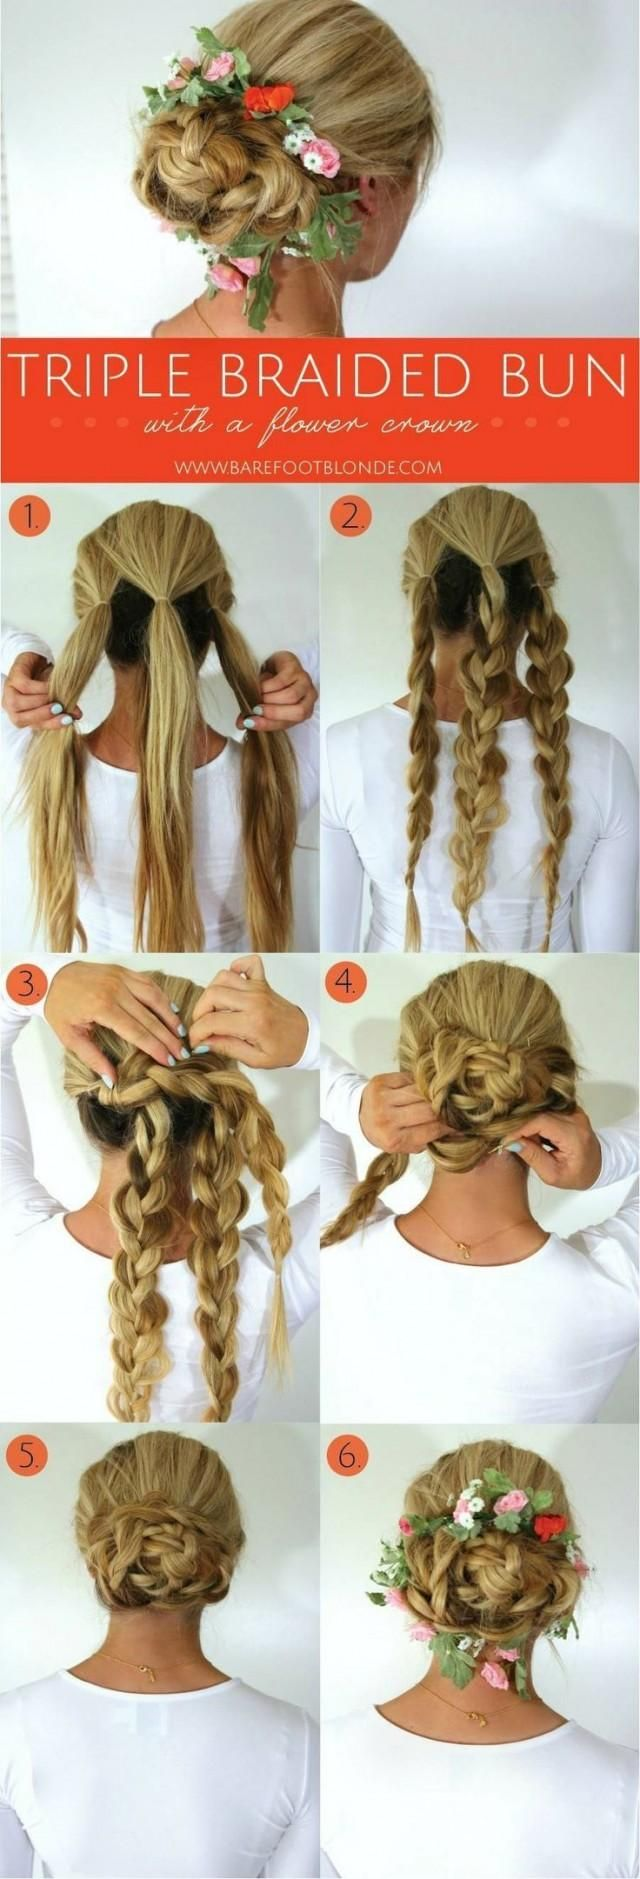 best braid hairstyles for long hair images on pinterest cute